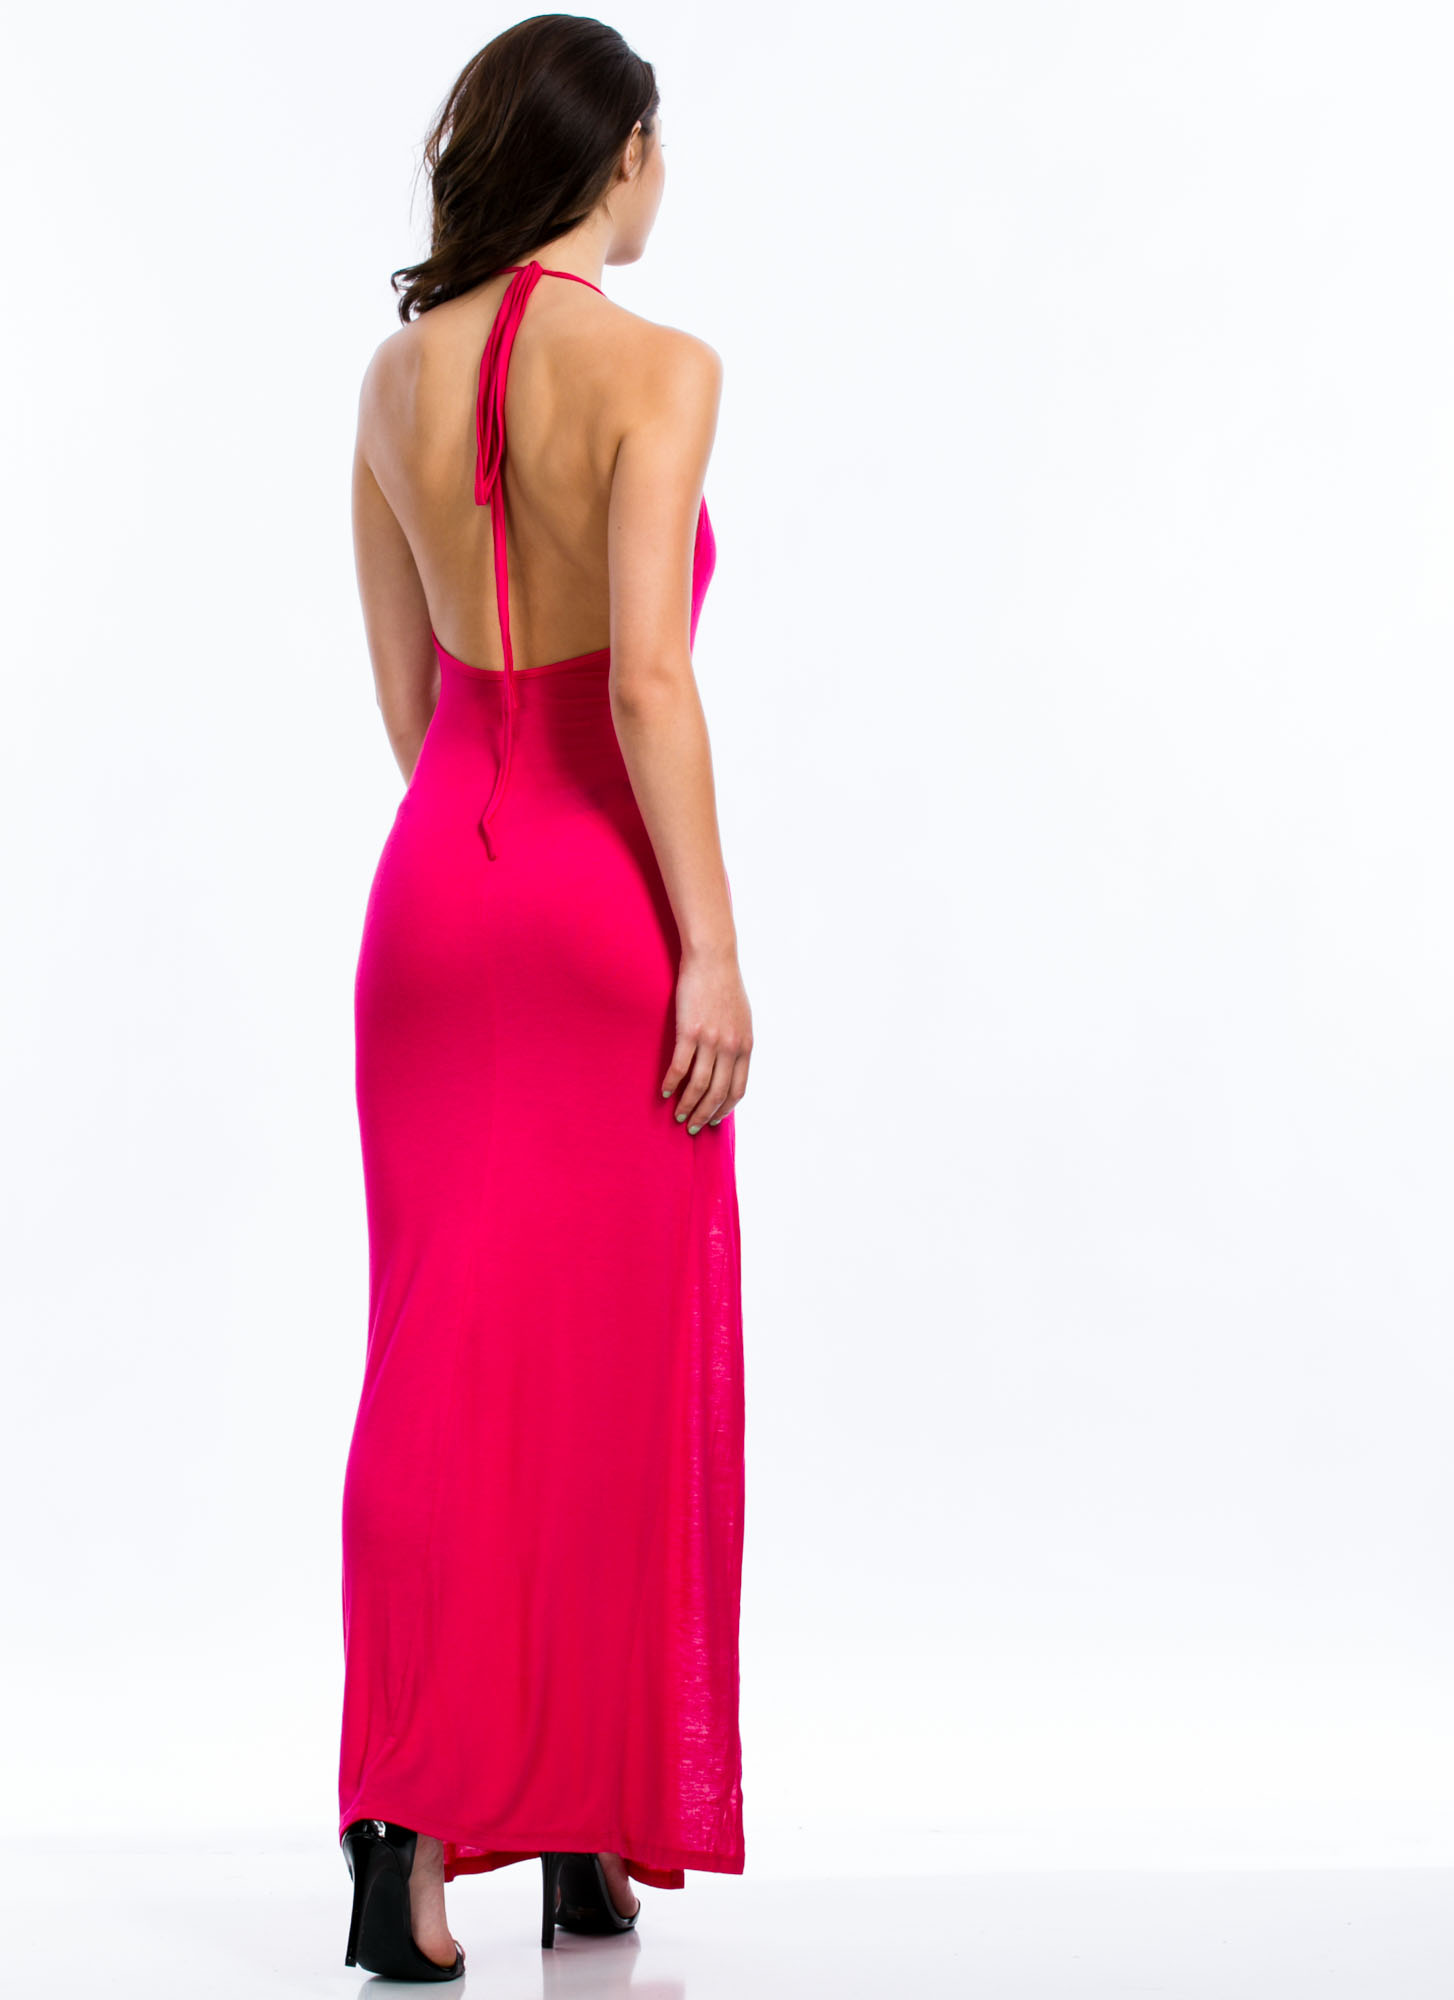 Will Beg 4 Leg Halter Maxi Dress FUCHSIA